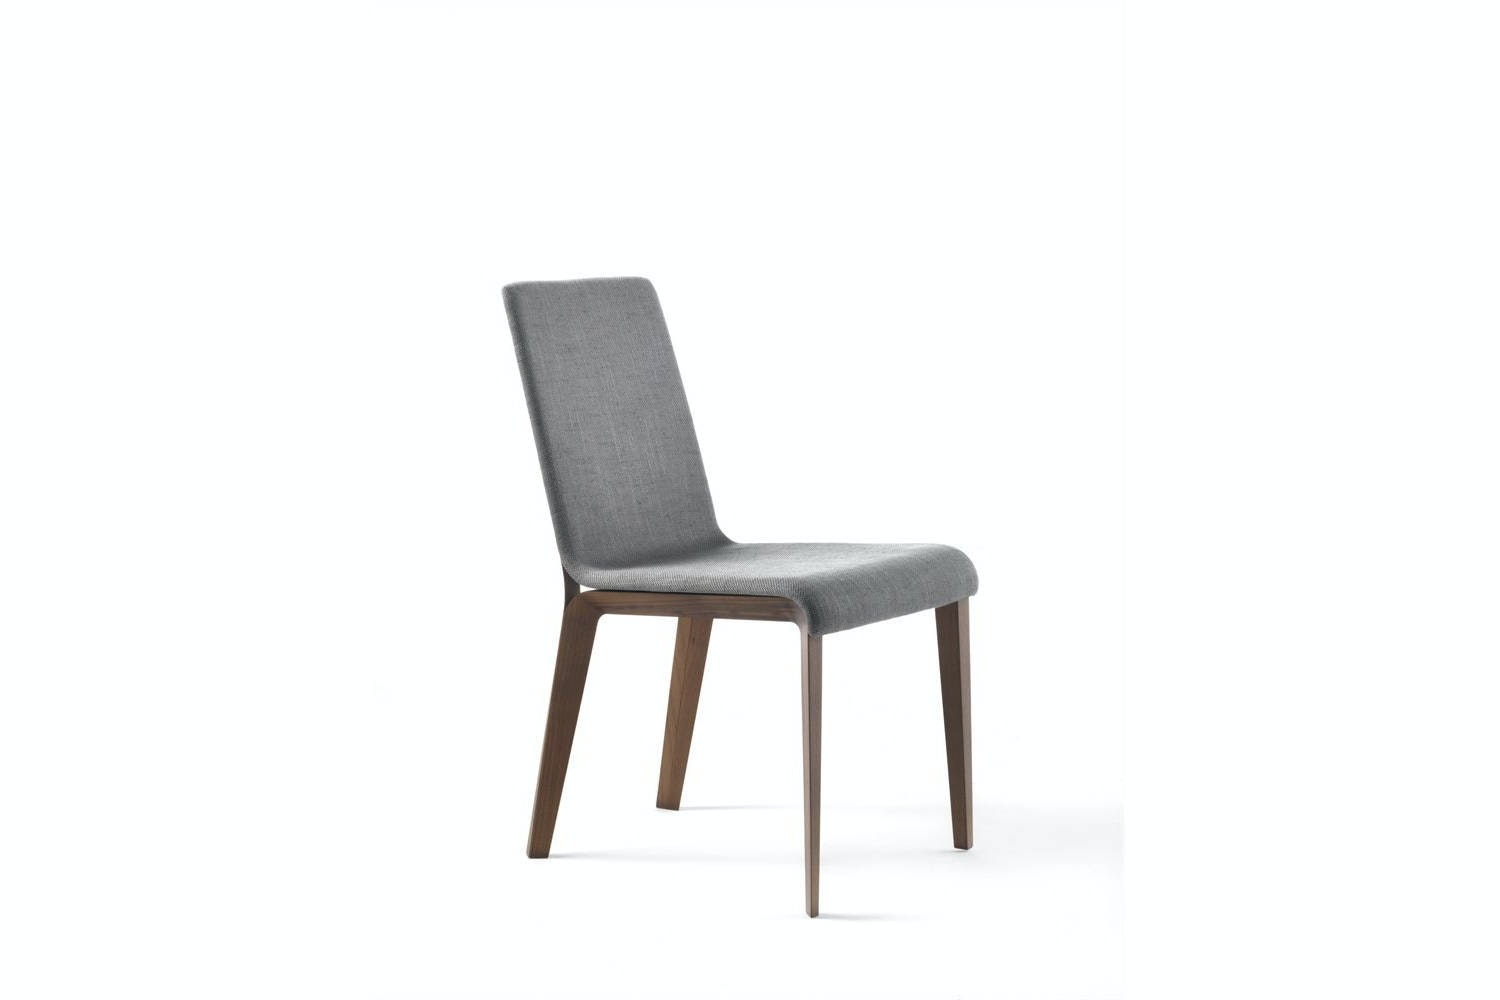 Aisha Chair by G. Carollo for Porada